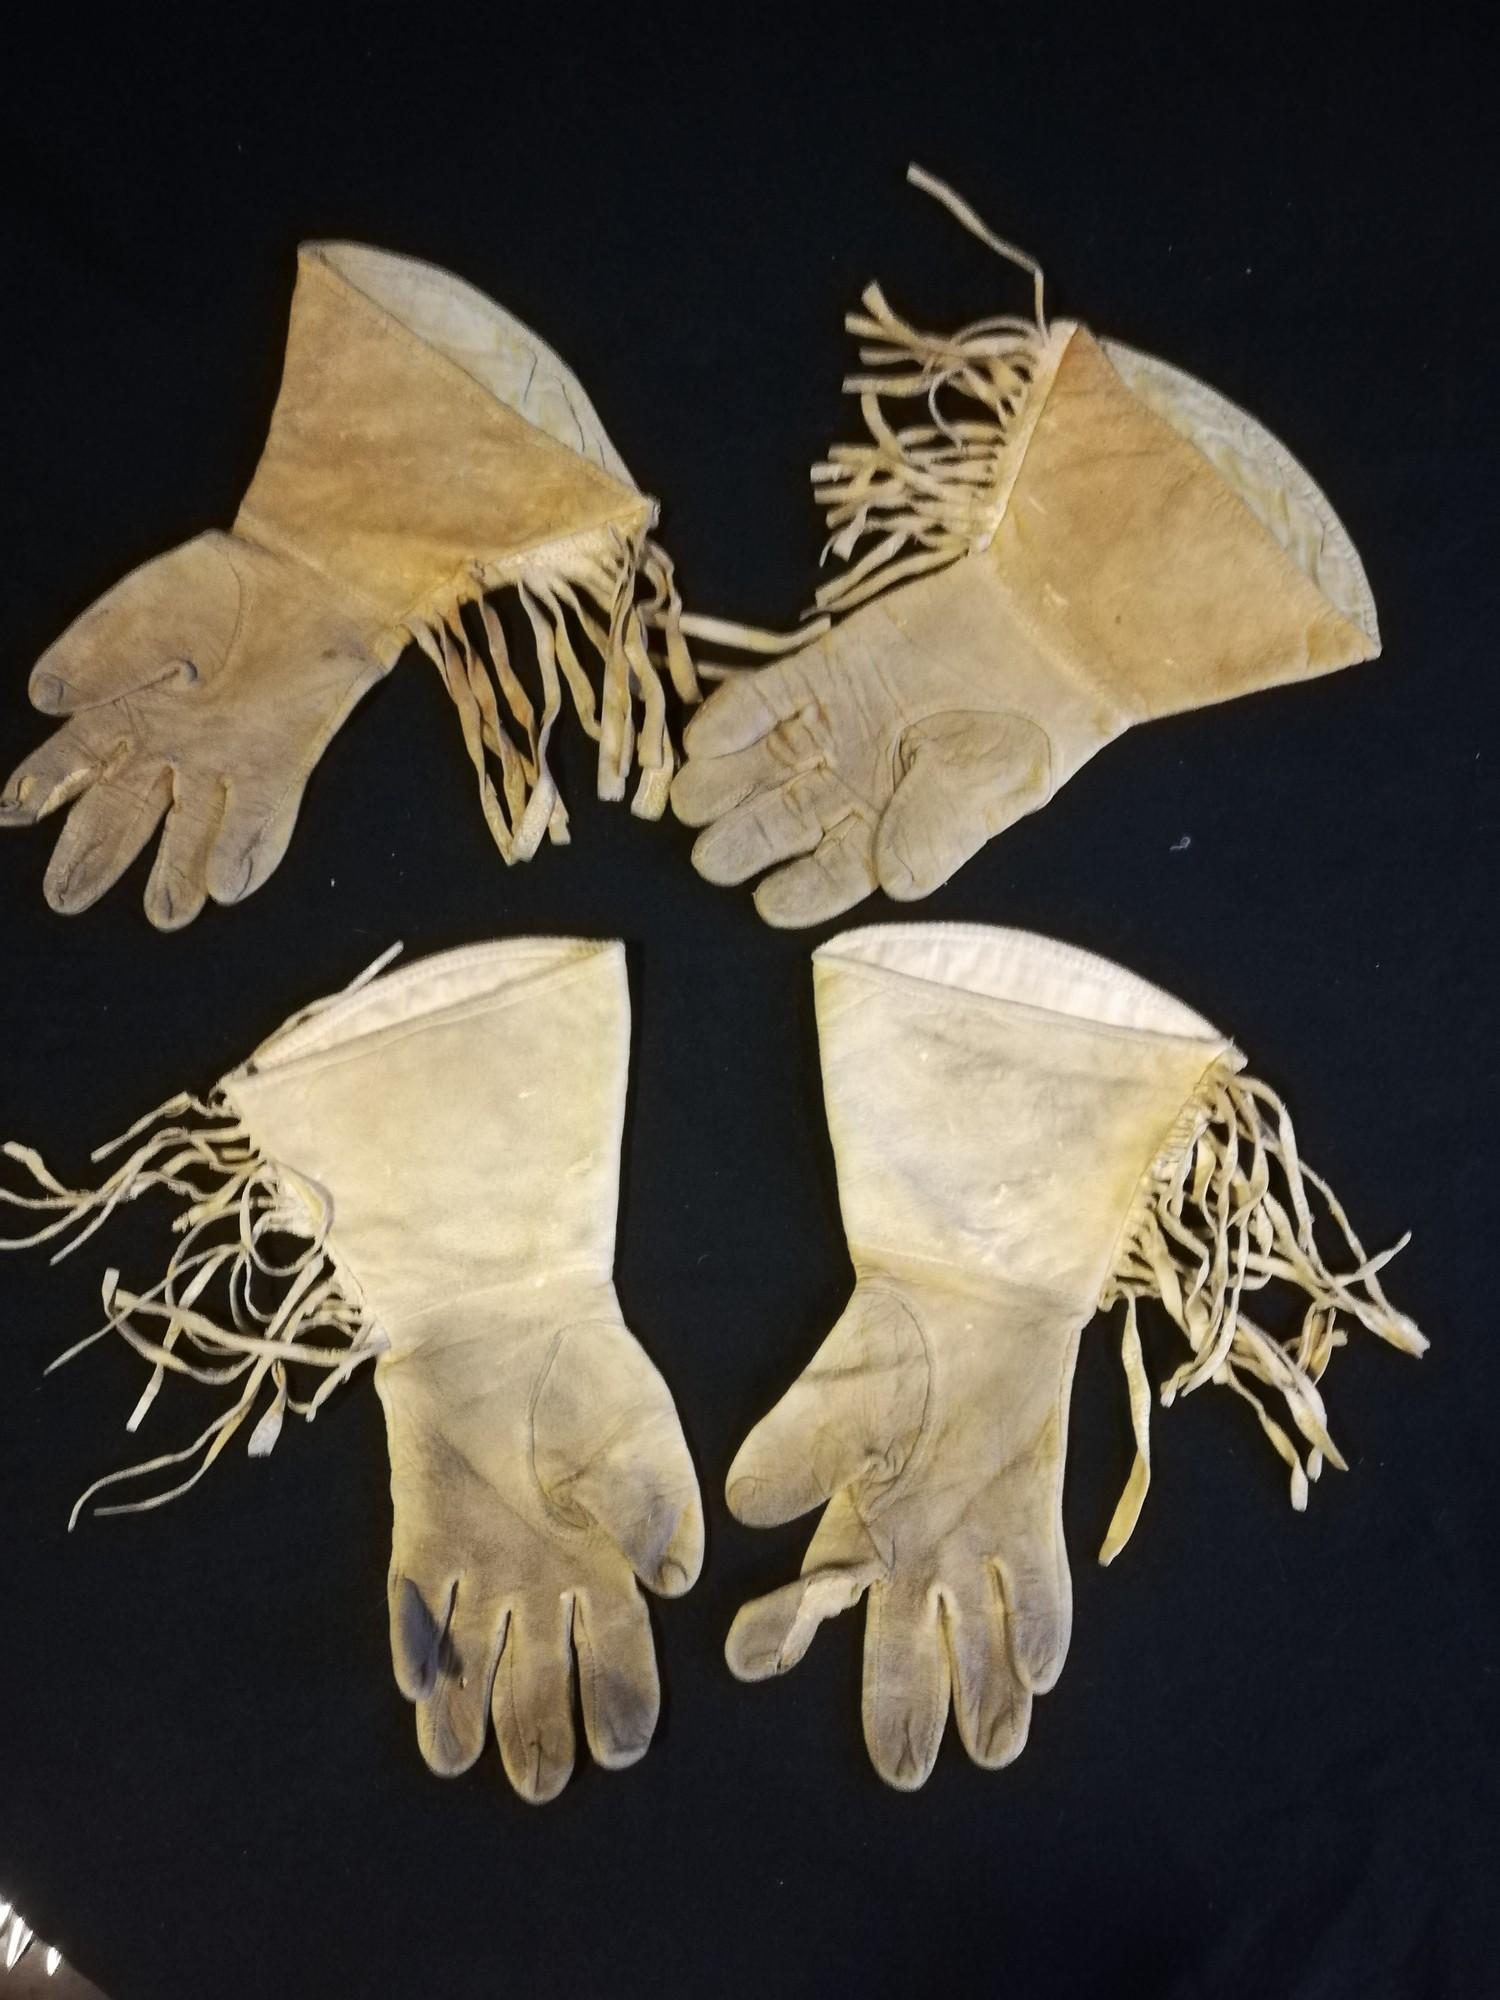 Lot 269 - 2 pairs of native North American Indian gloves with bead decoration